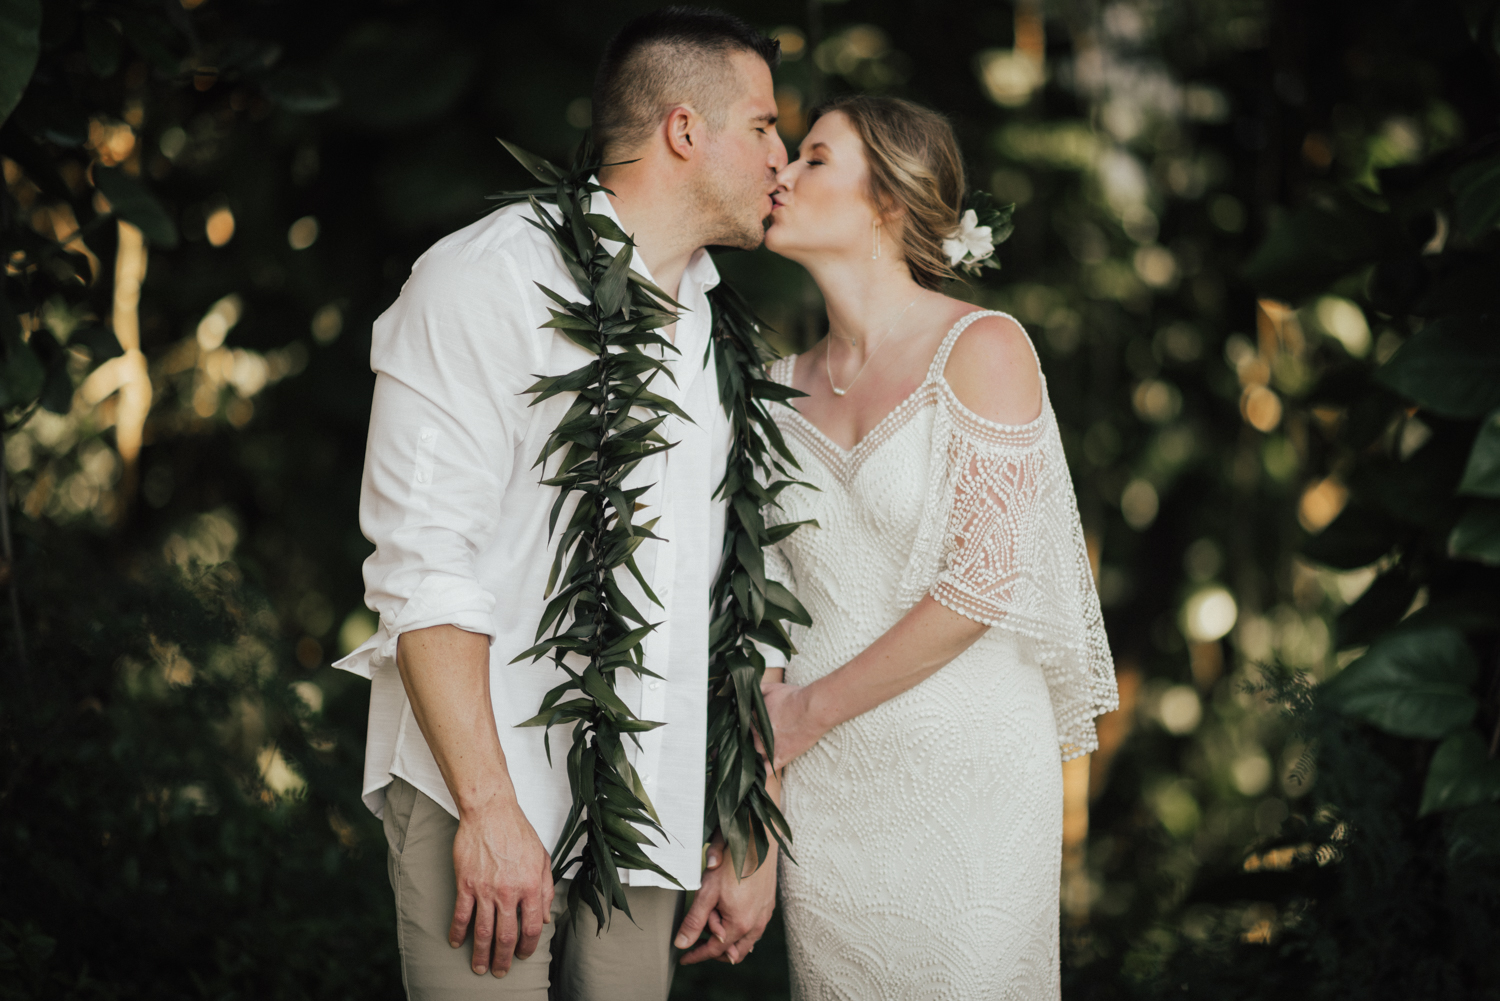 Kauai-elopement-photographer-55.jpg